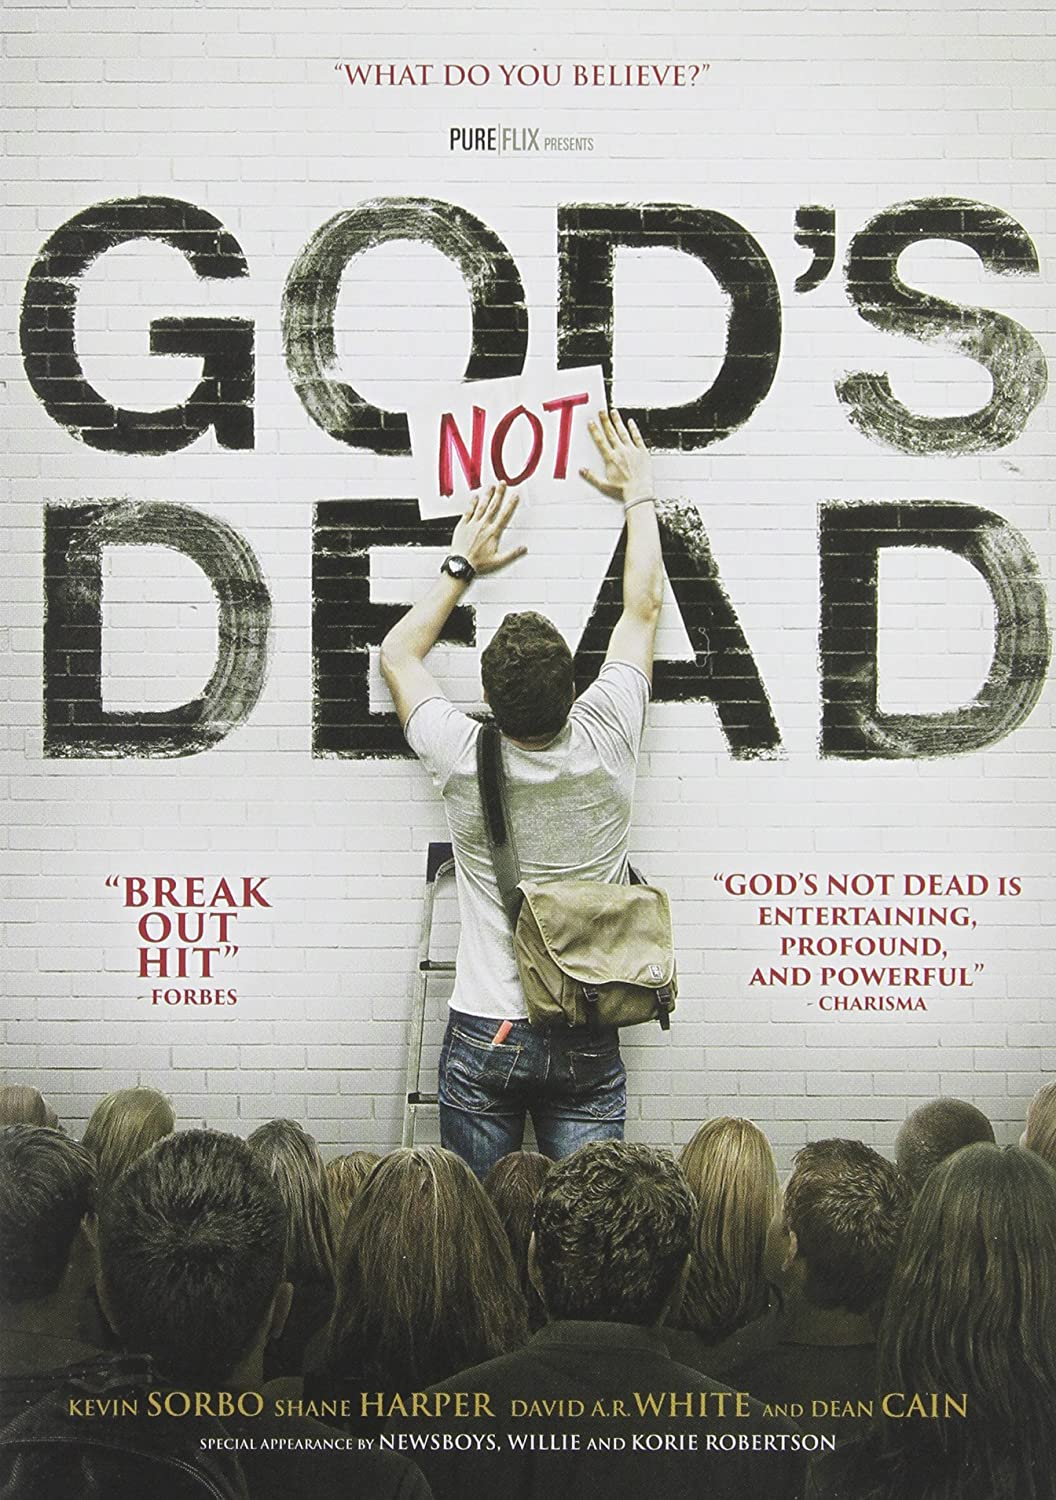 God's Not Dead - DVD Image